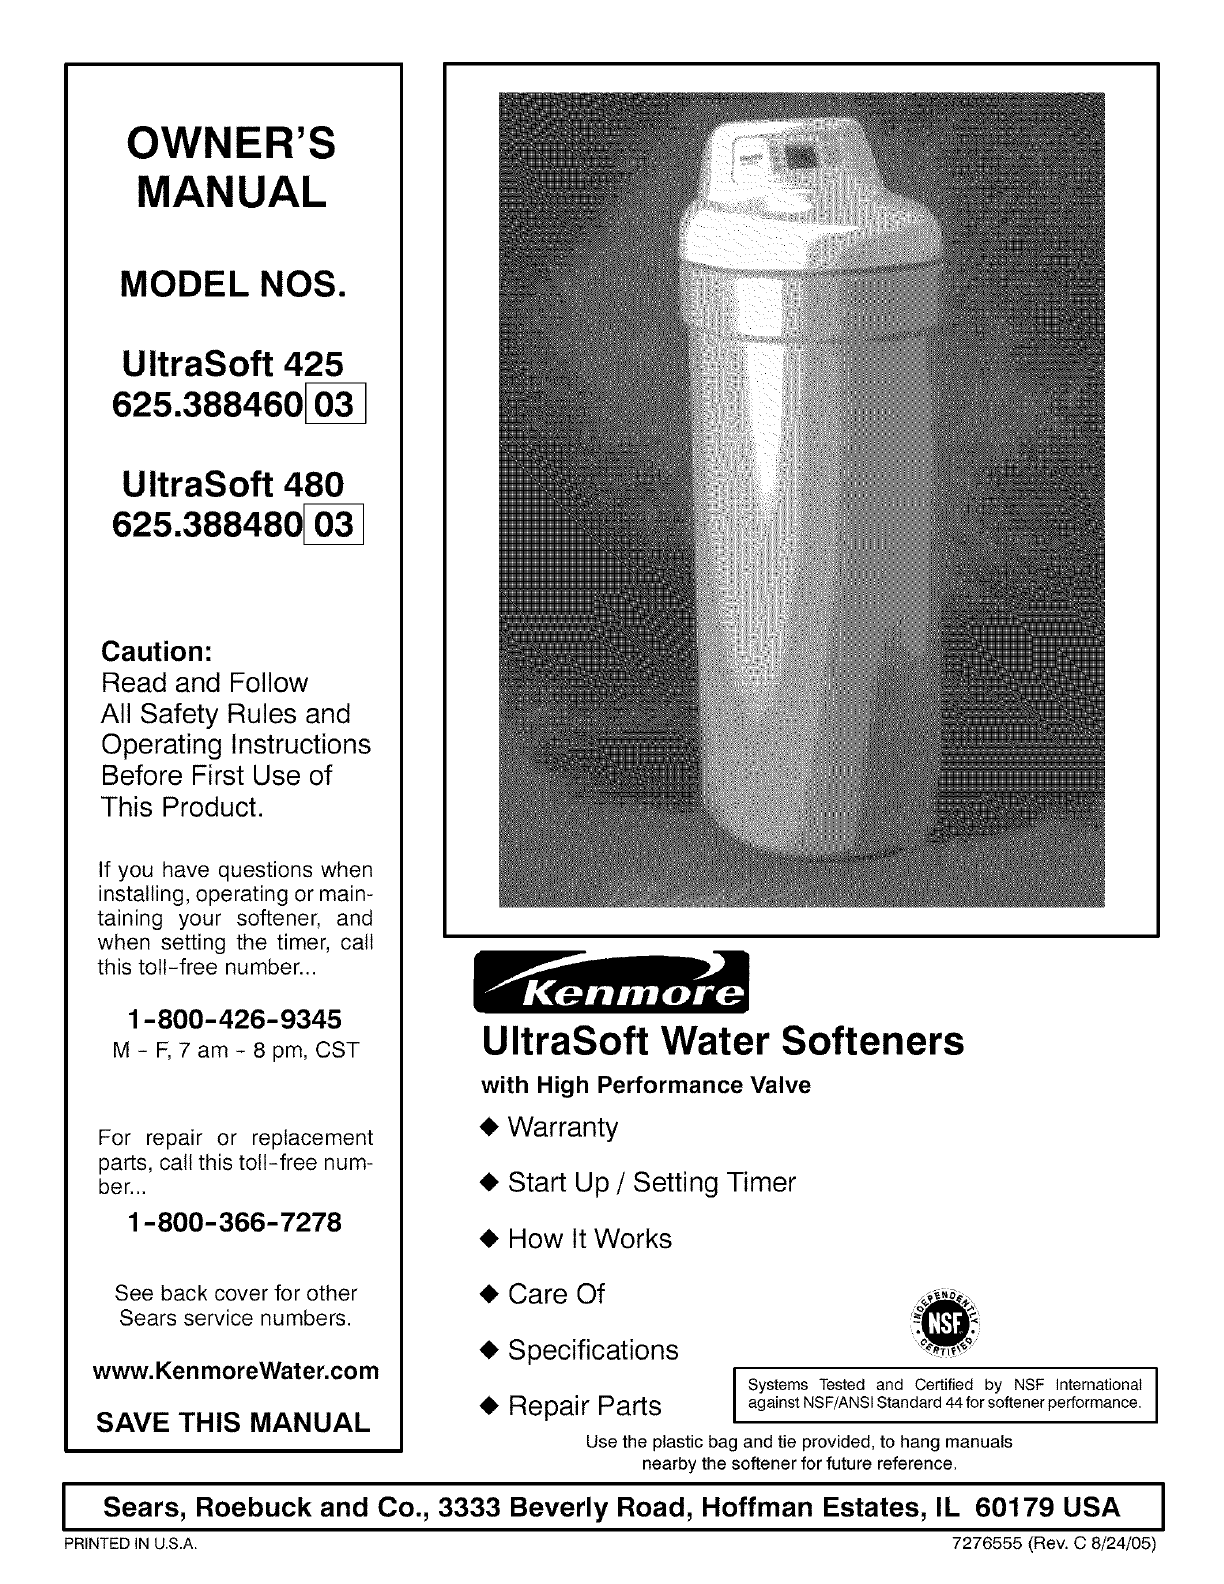 Kenmore water system 425 user guide manualsonline ccuart Image collections